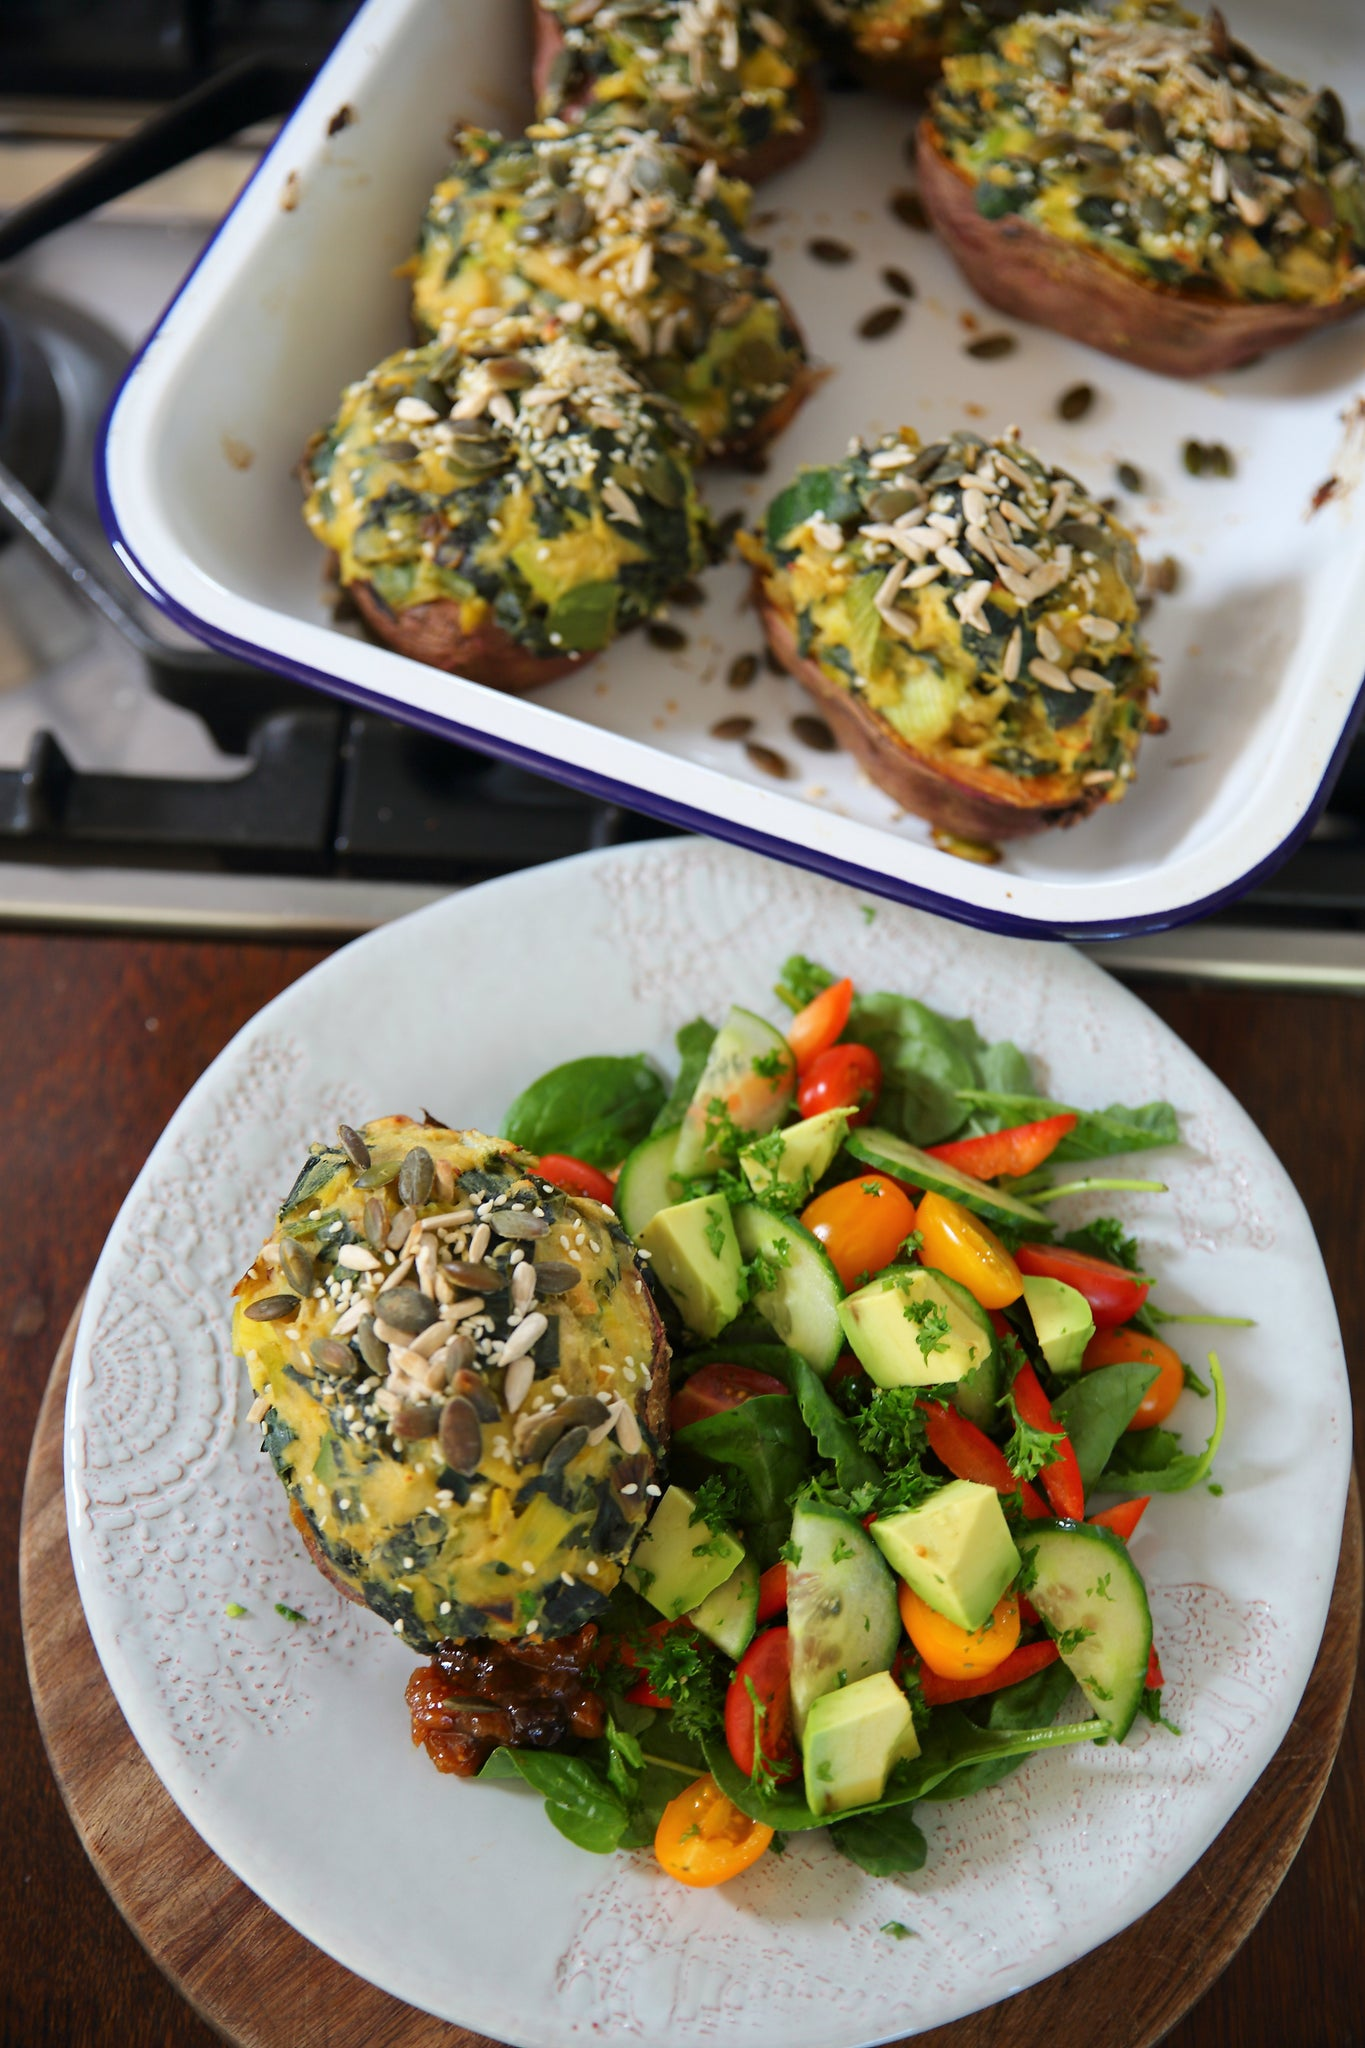 Easy Midweek STUFFED KUMARAS - #vegan #vegetarian #dairyfree #glutenfree #eggfree #healthy #dinner #family #recipe #begoodorganics